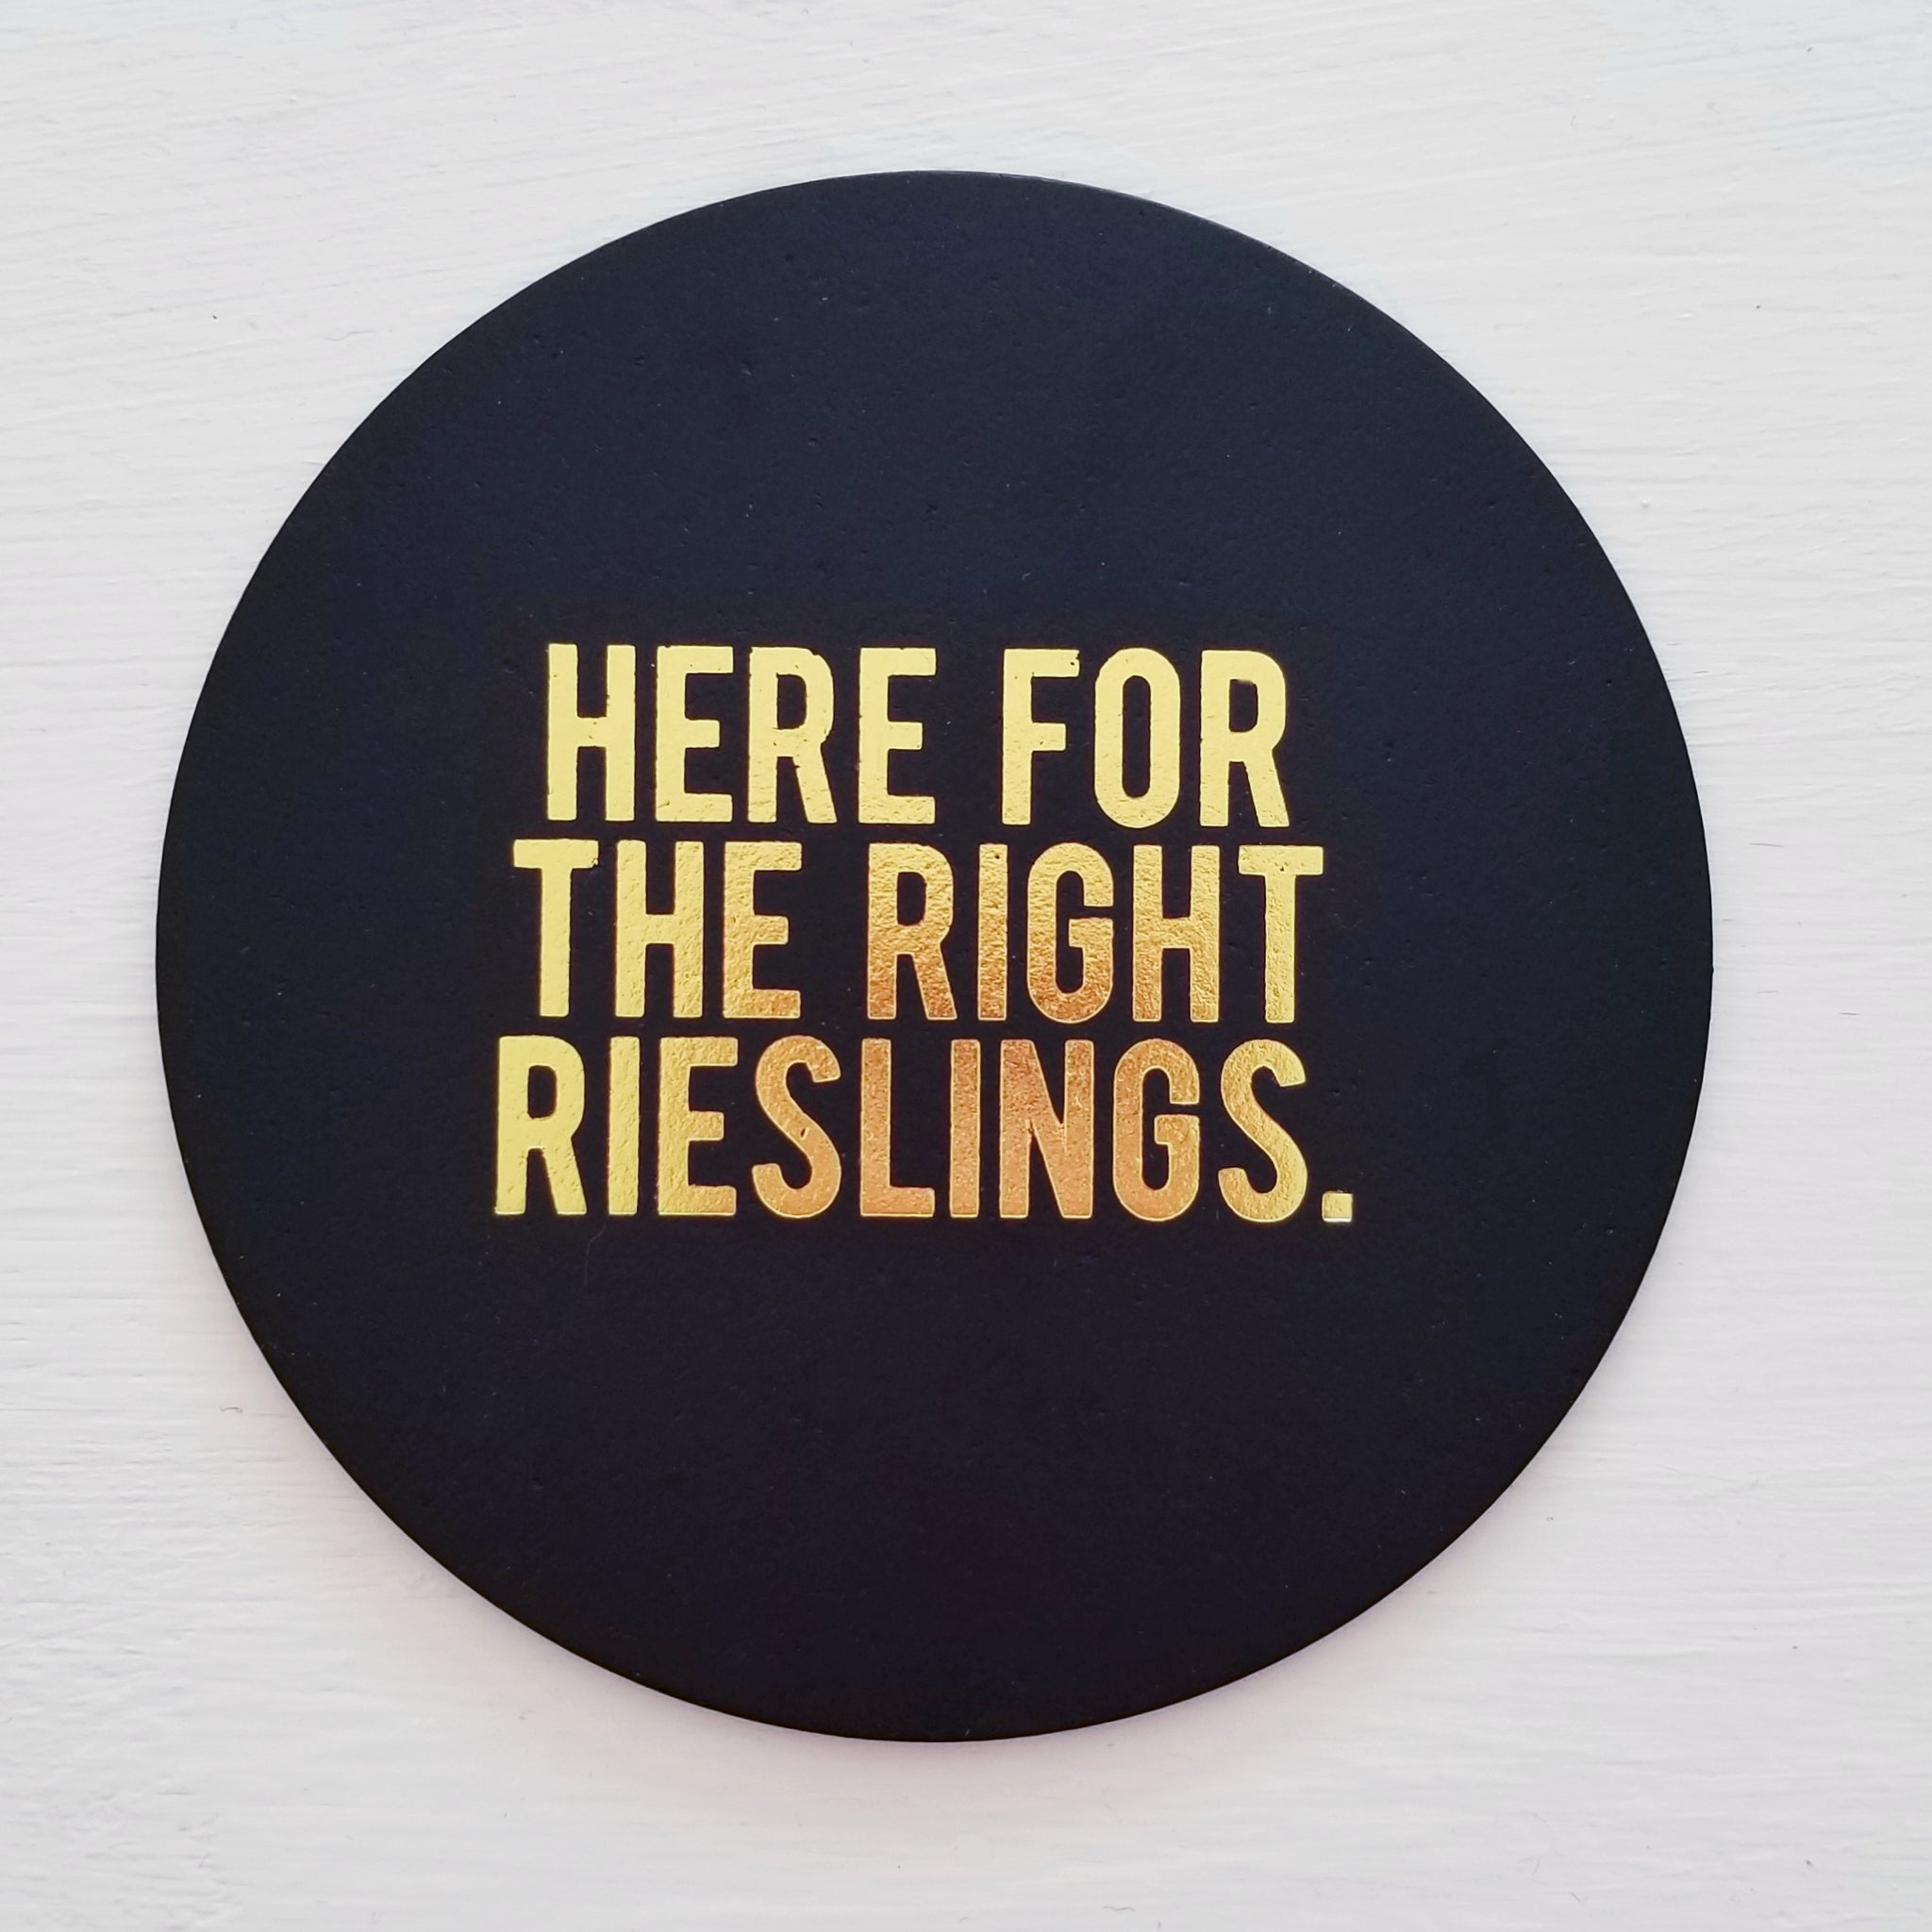 Right Rieslings Leather Coaster – SippingTHIS, LLC